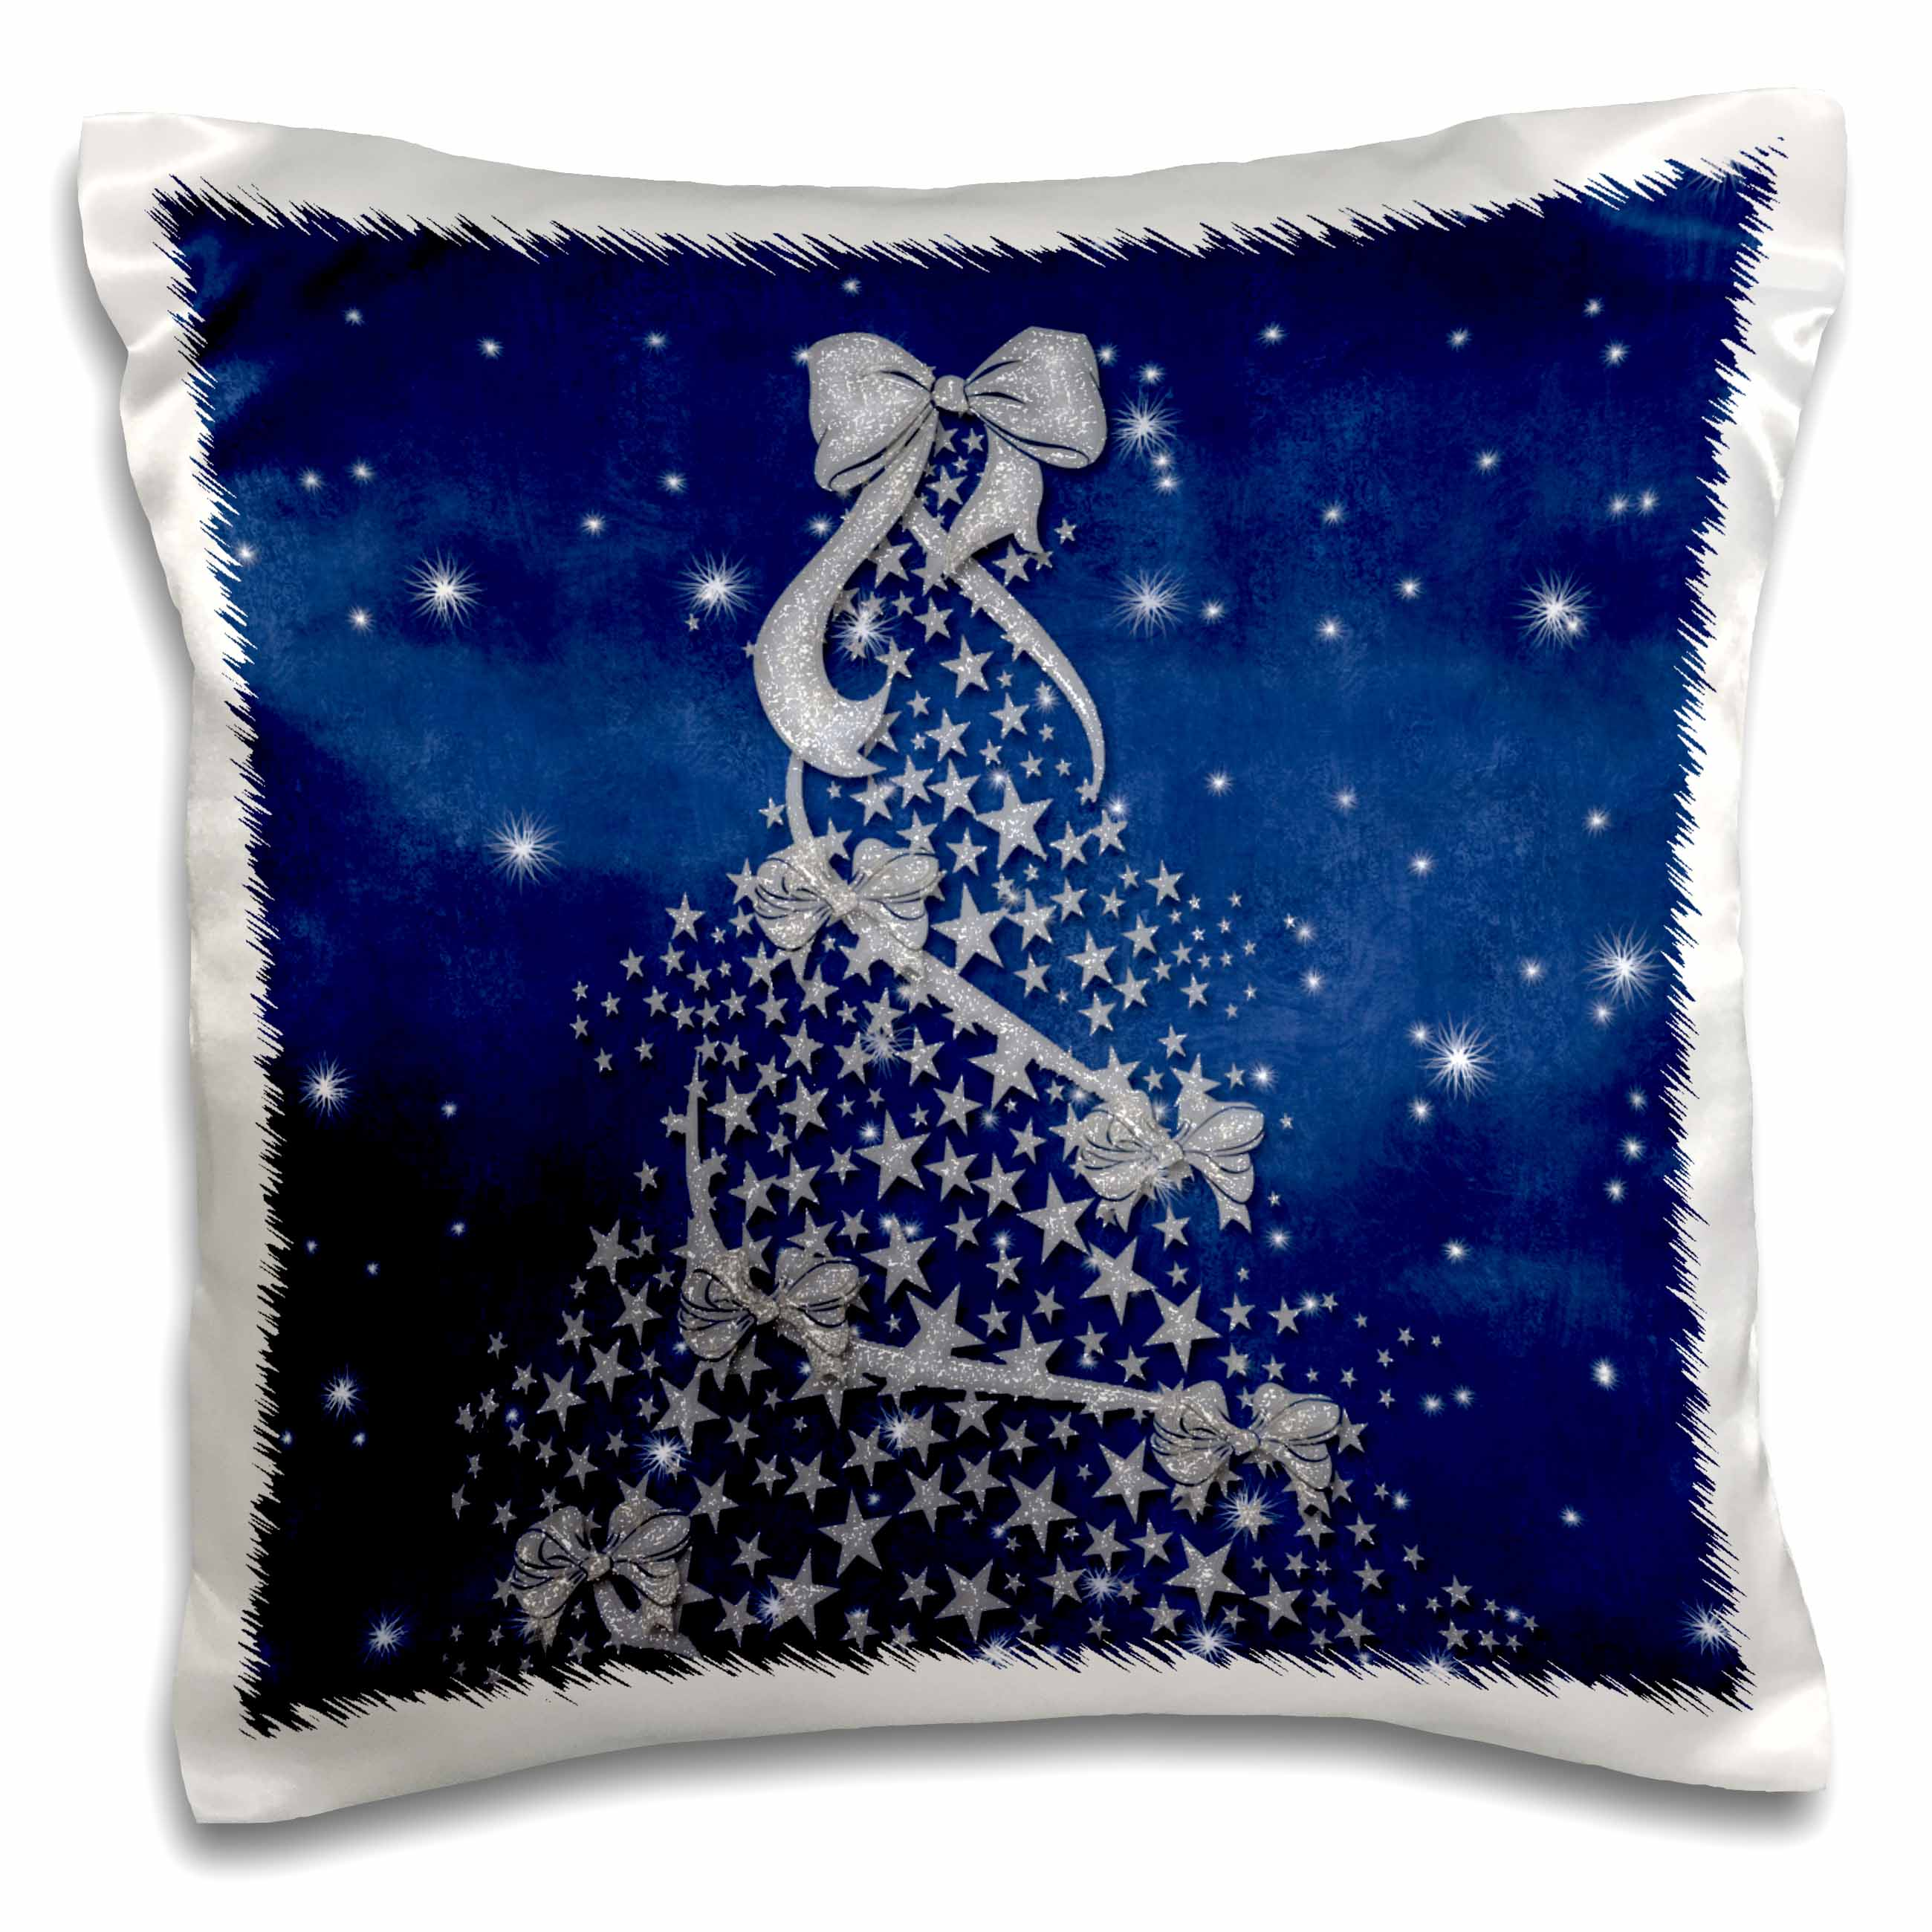 3dRose Blue and Silver Christmas Tree with Snow, Pillow Case, 16 by 16-inch